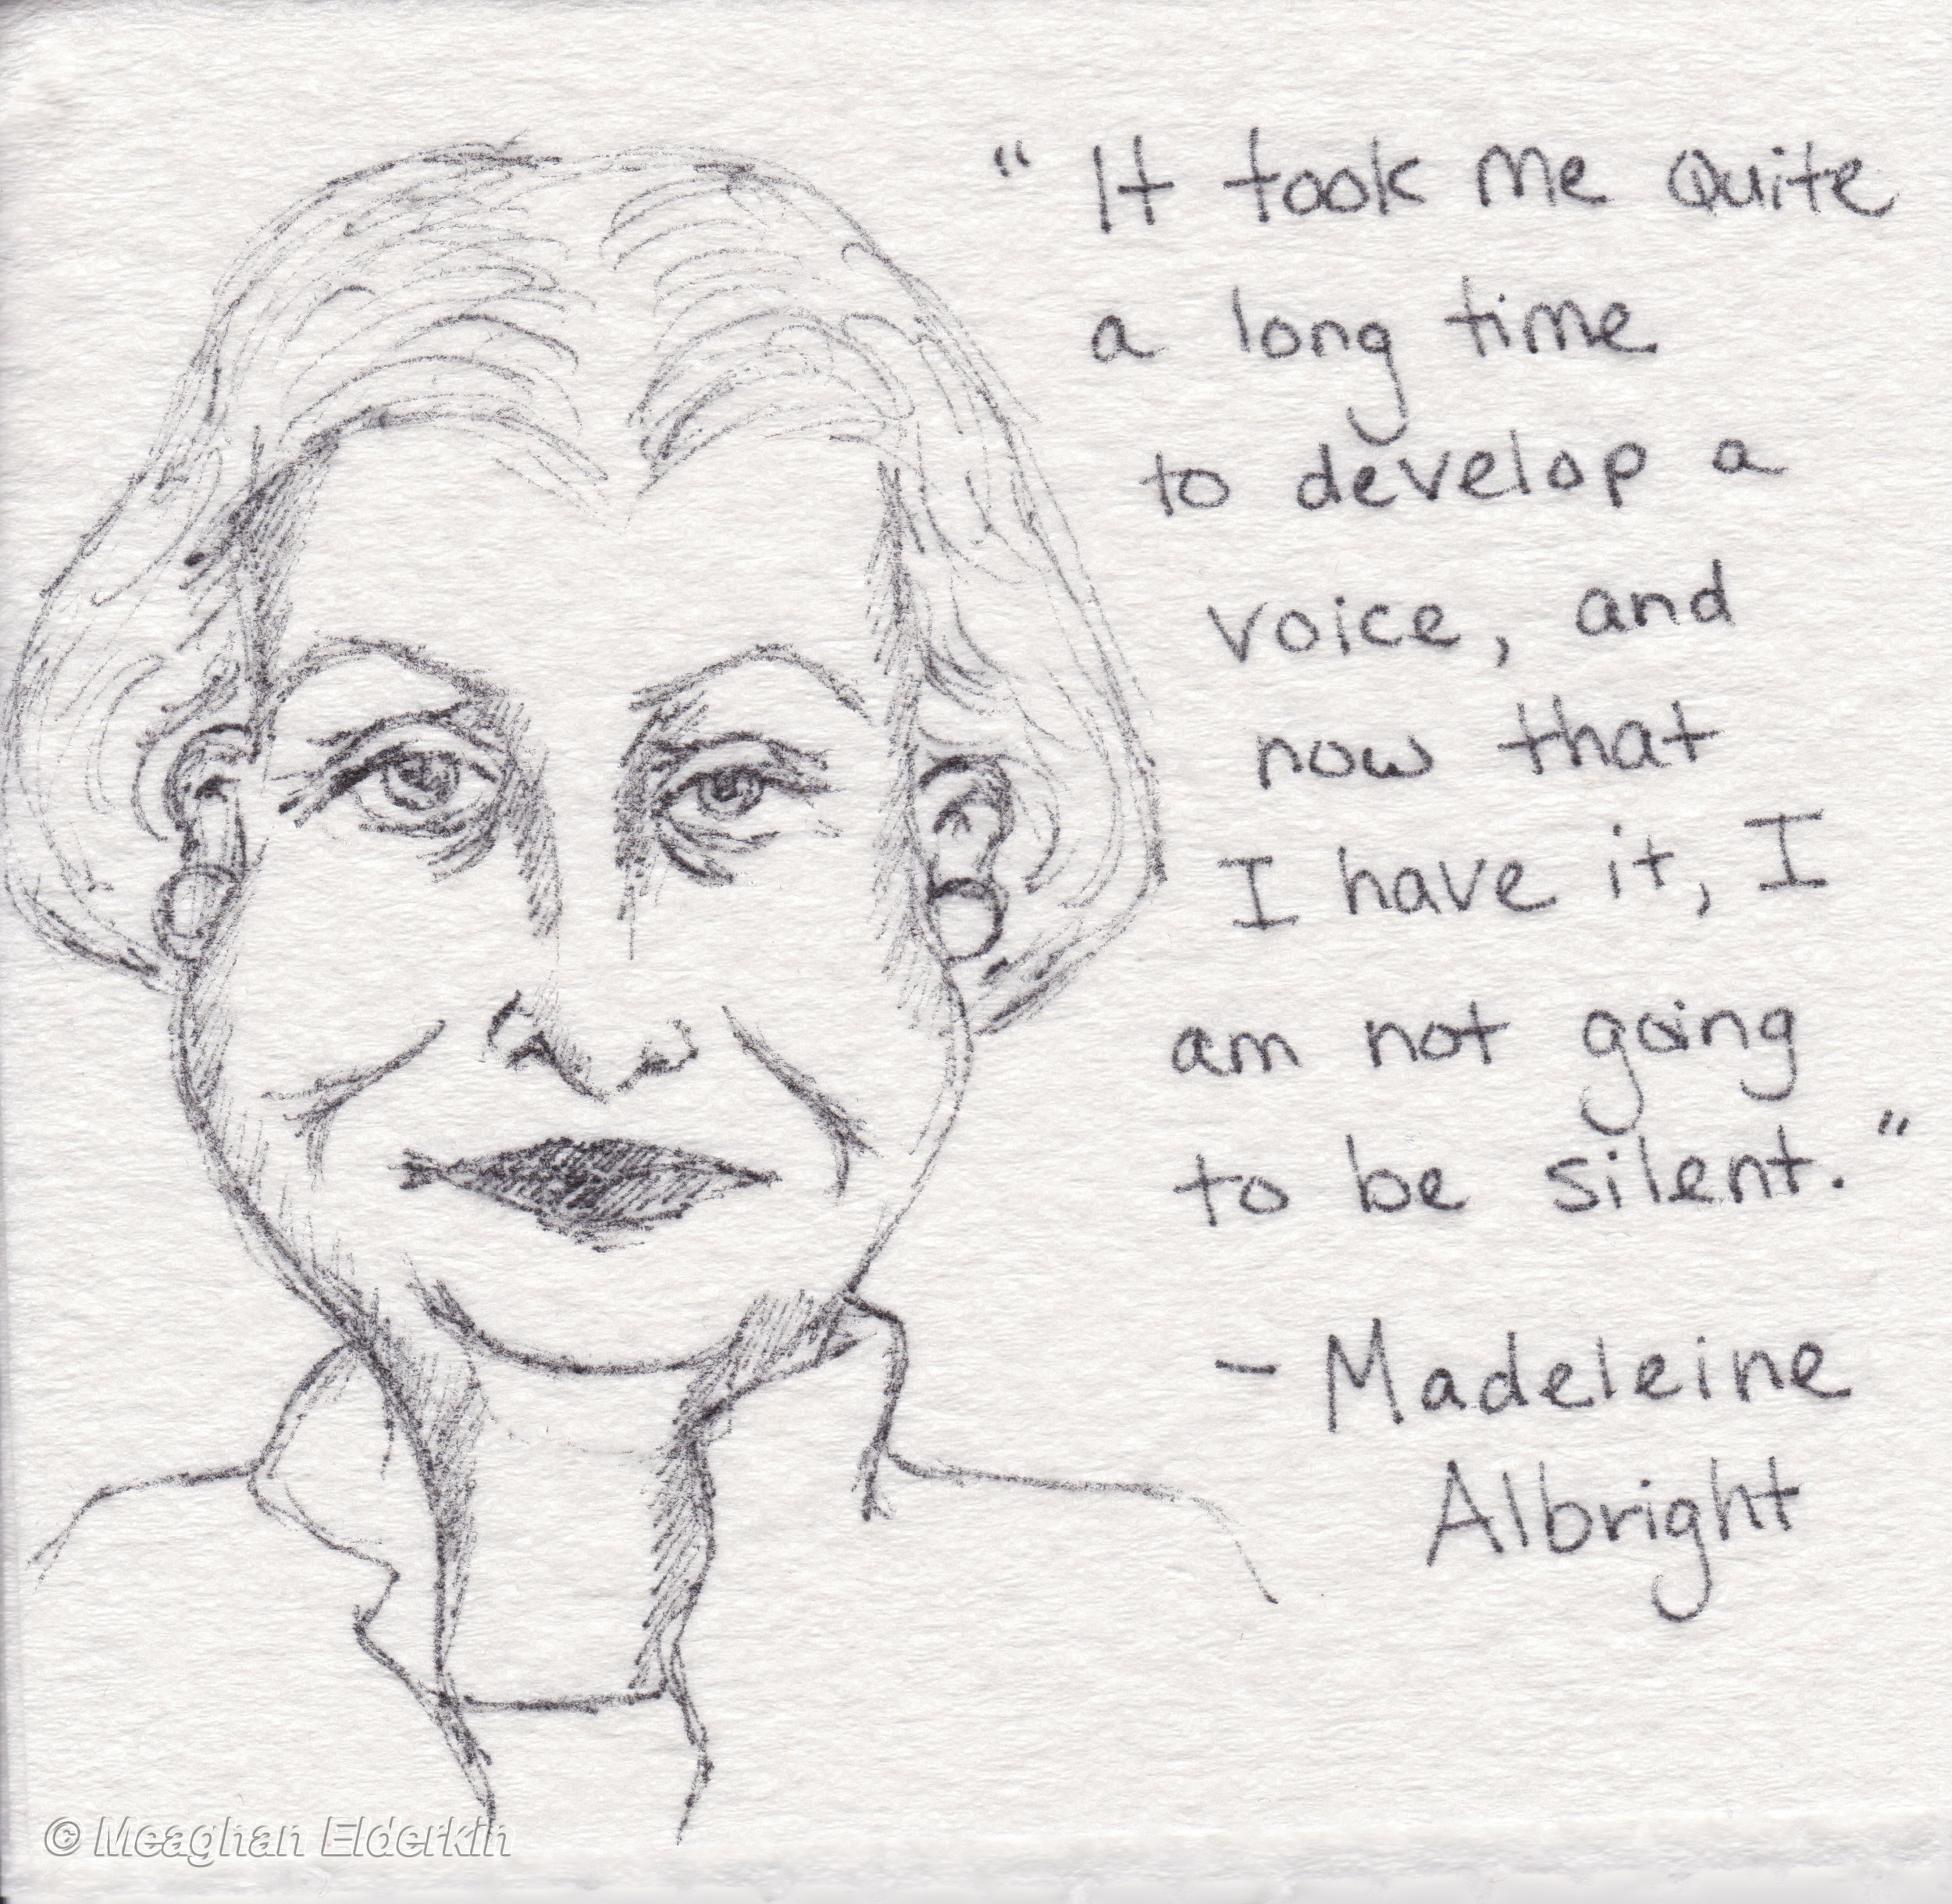 Madeleine Albright - American politician and diplomat